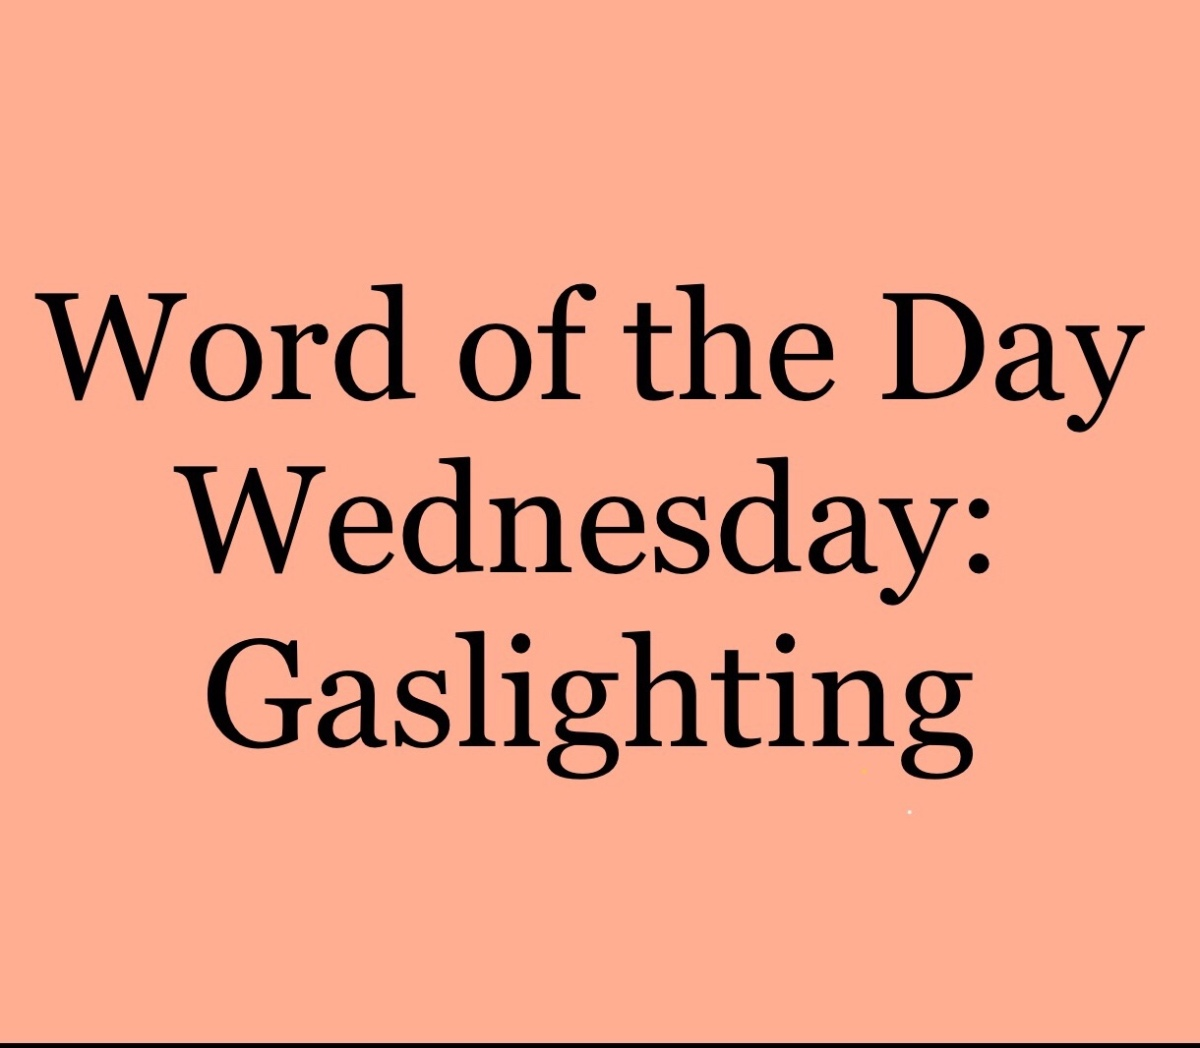 Word of the Day Wednesday: Gaslighting